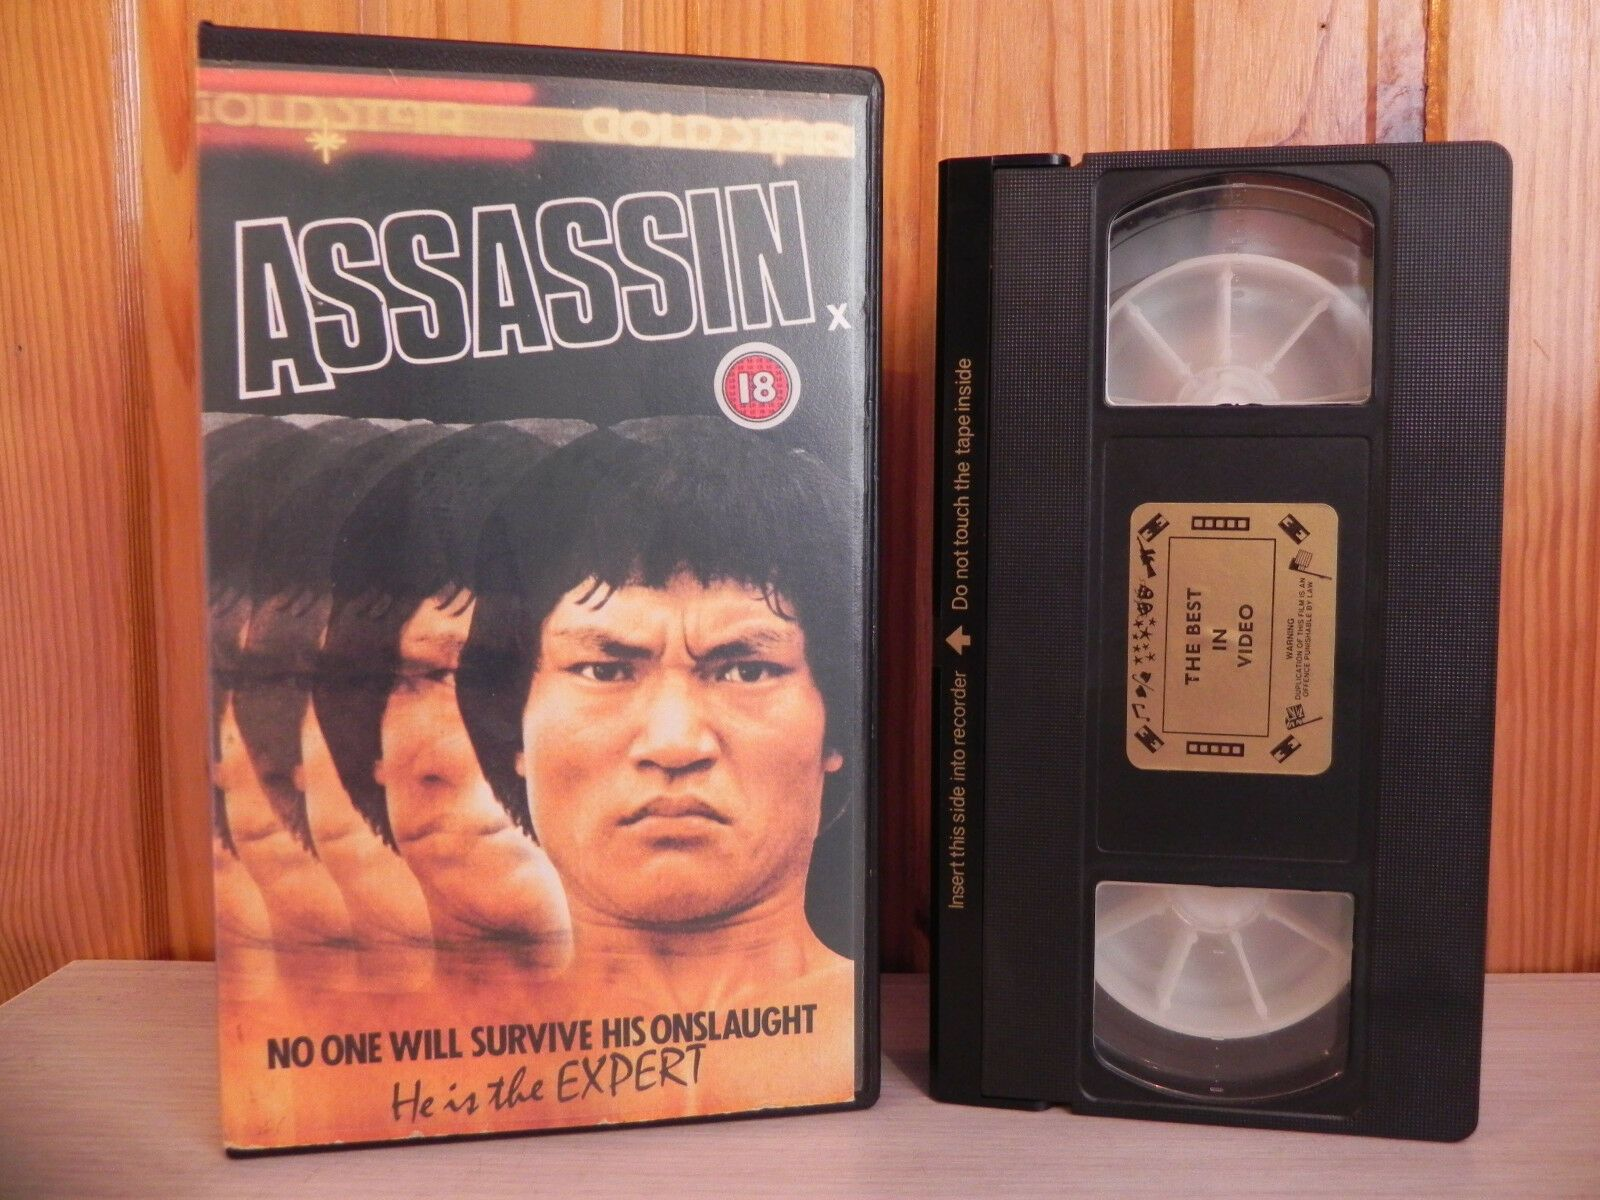 Assassin - Pre-Cert - Martial Arts - Action - Gold Star - Derann - FGS902 - VHS